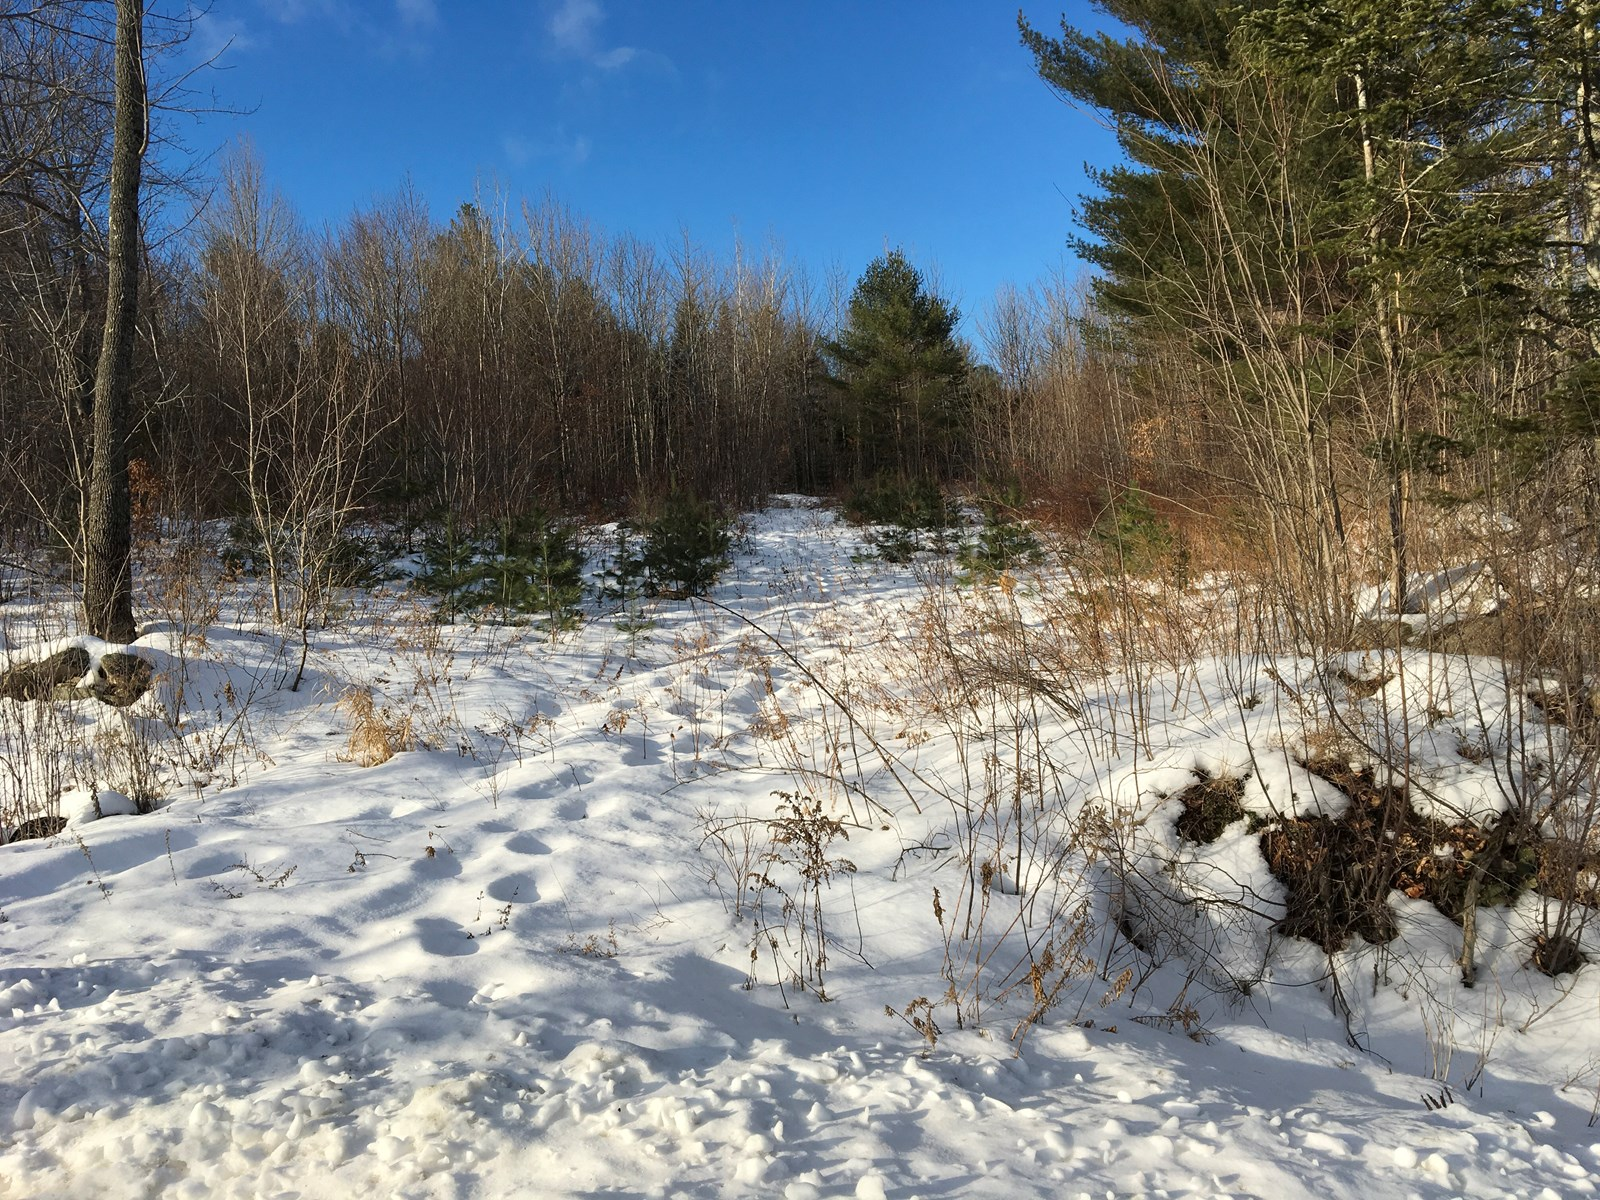 Investment Land Property For Sale in Garland, Maine